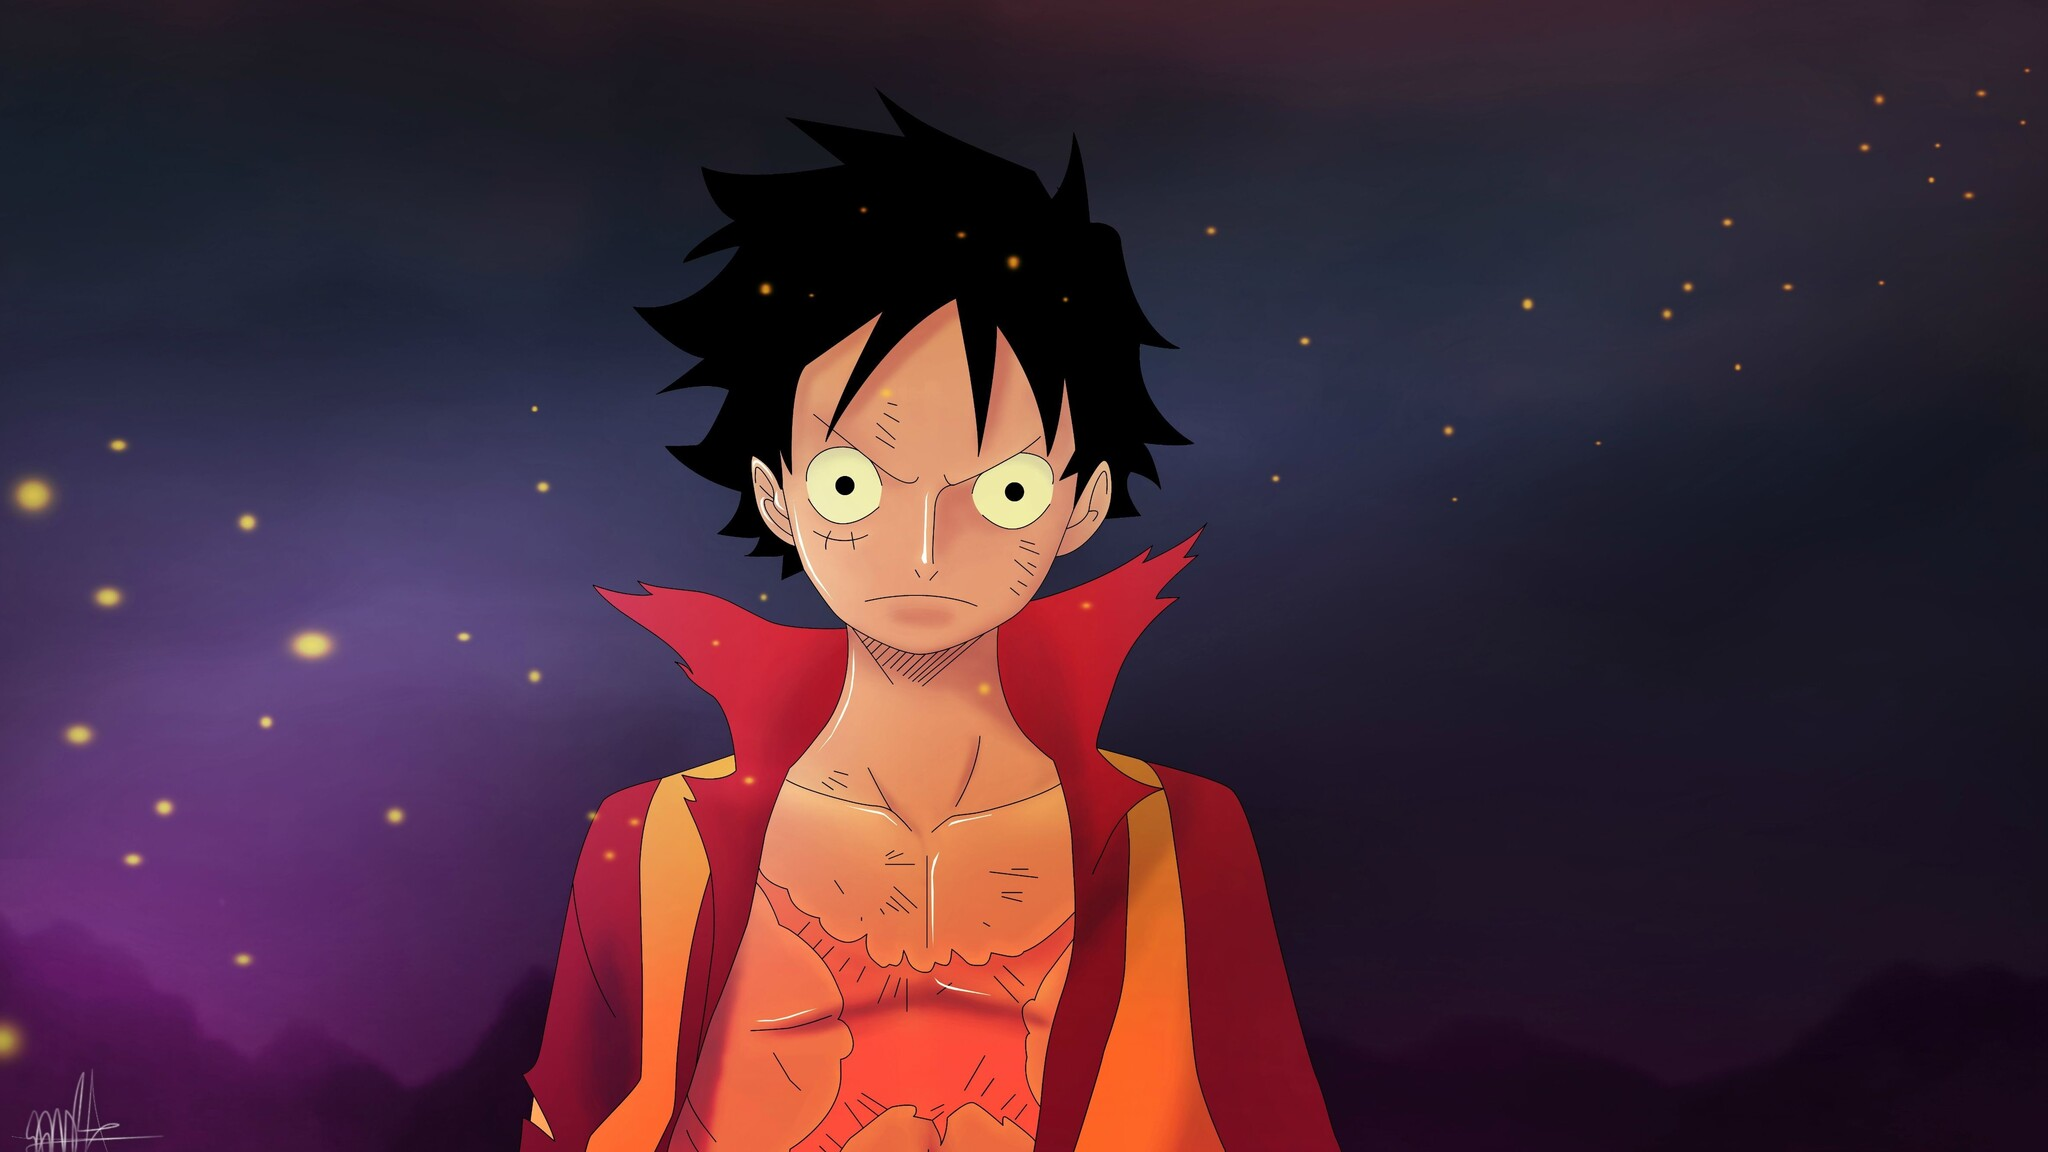 Make your device cooler and more beautiful. 2048x1152 Monkey D Luffy One Piece 4k 2048x1152 Resolution ...